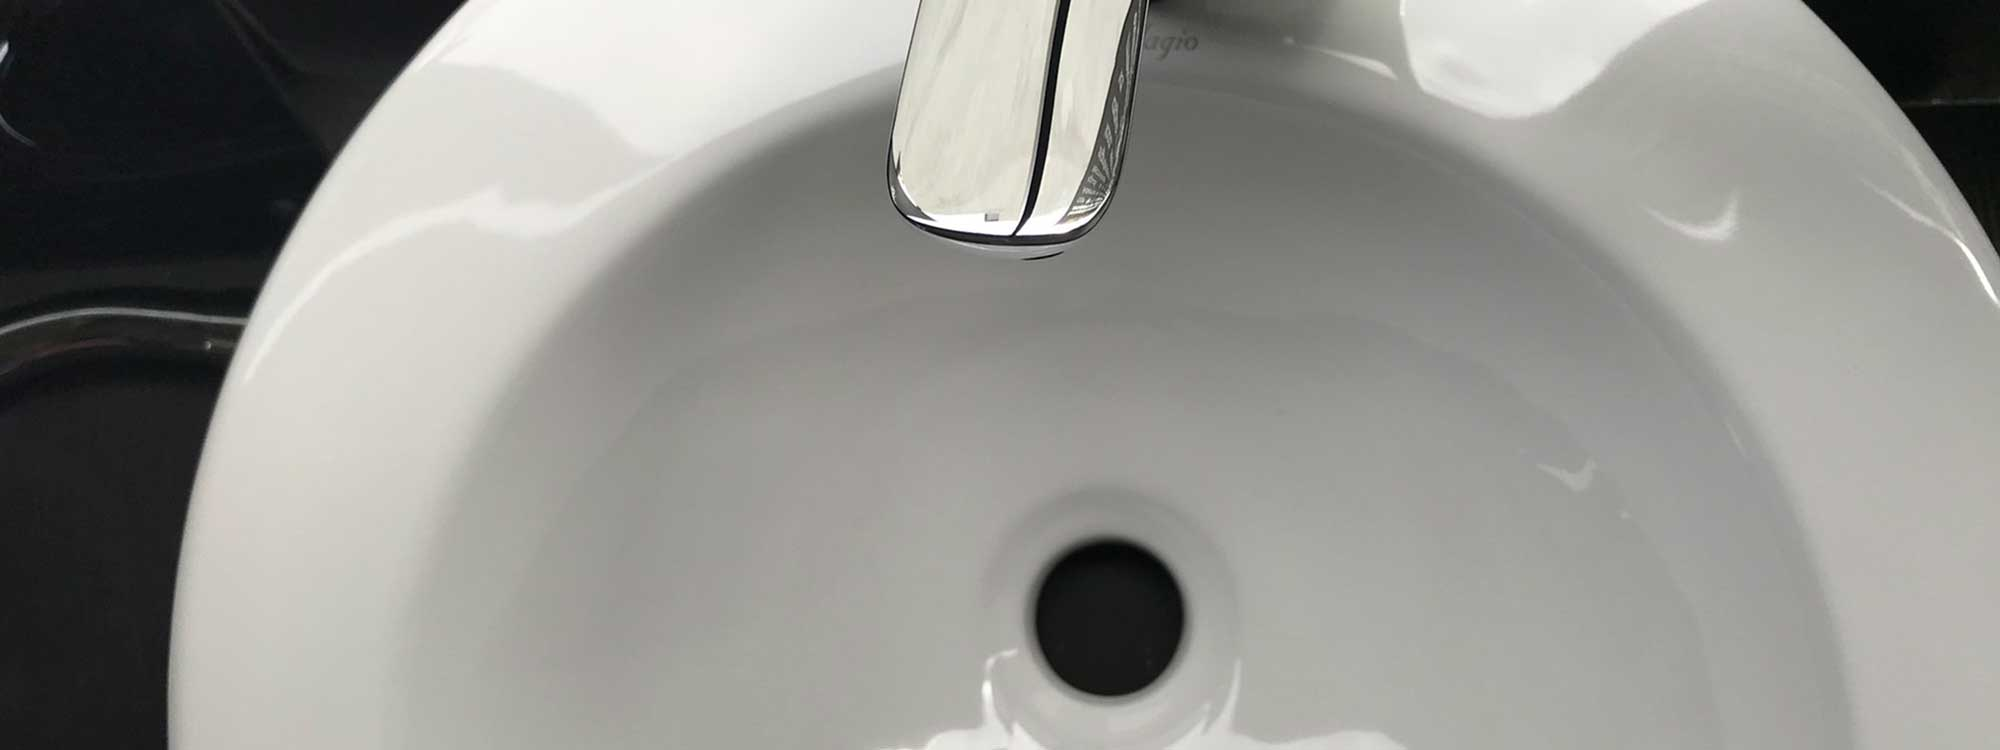 An average of 50 gallons of clean water are lost a week to leaks in faucets.